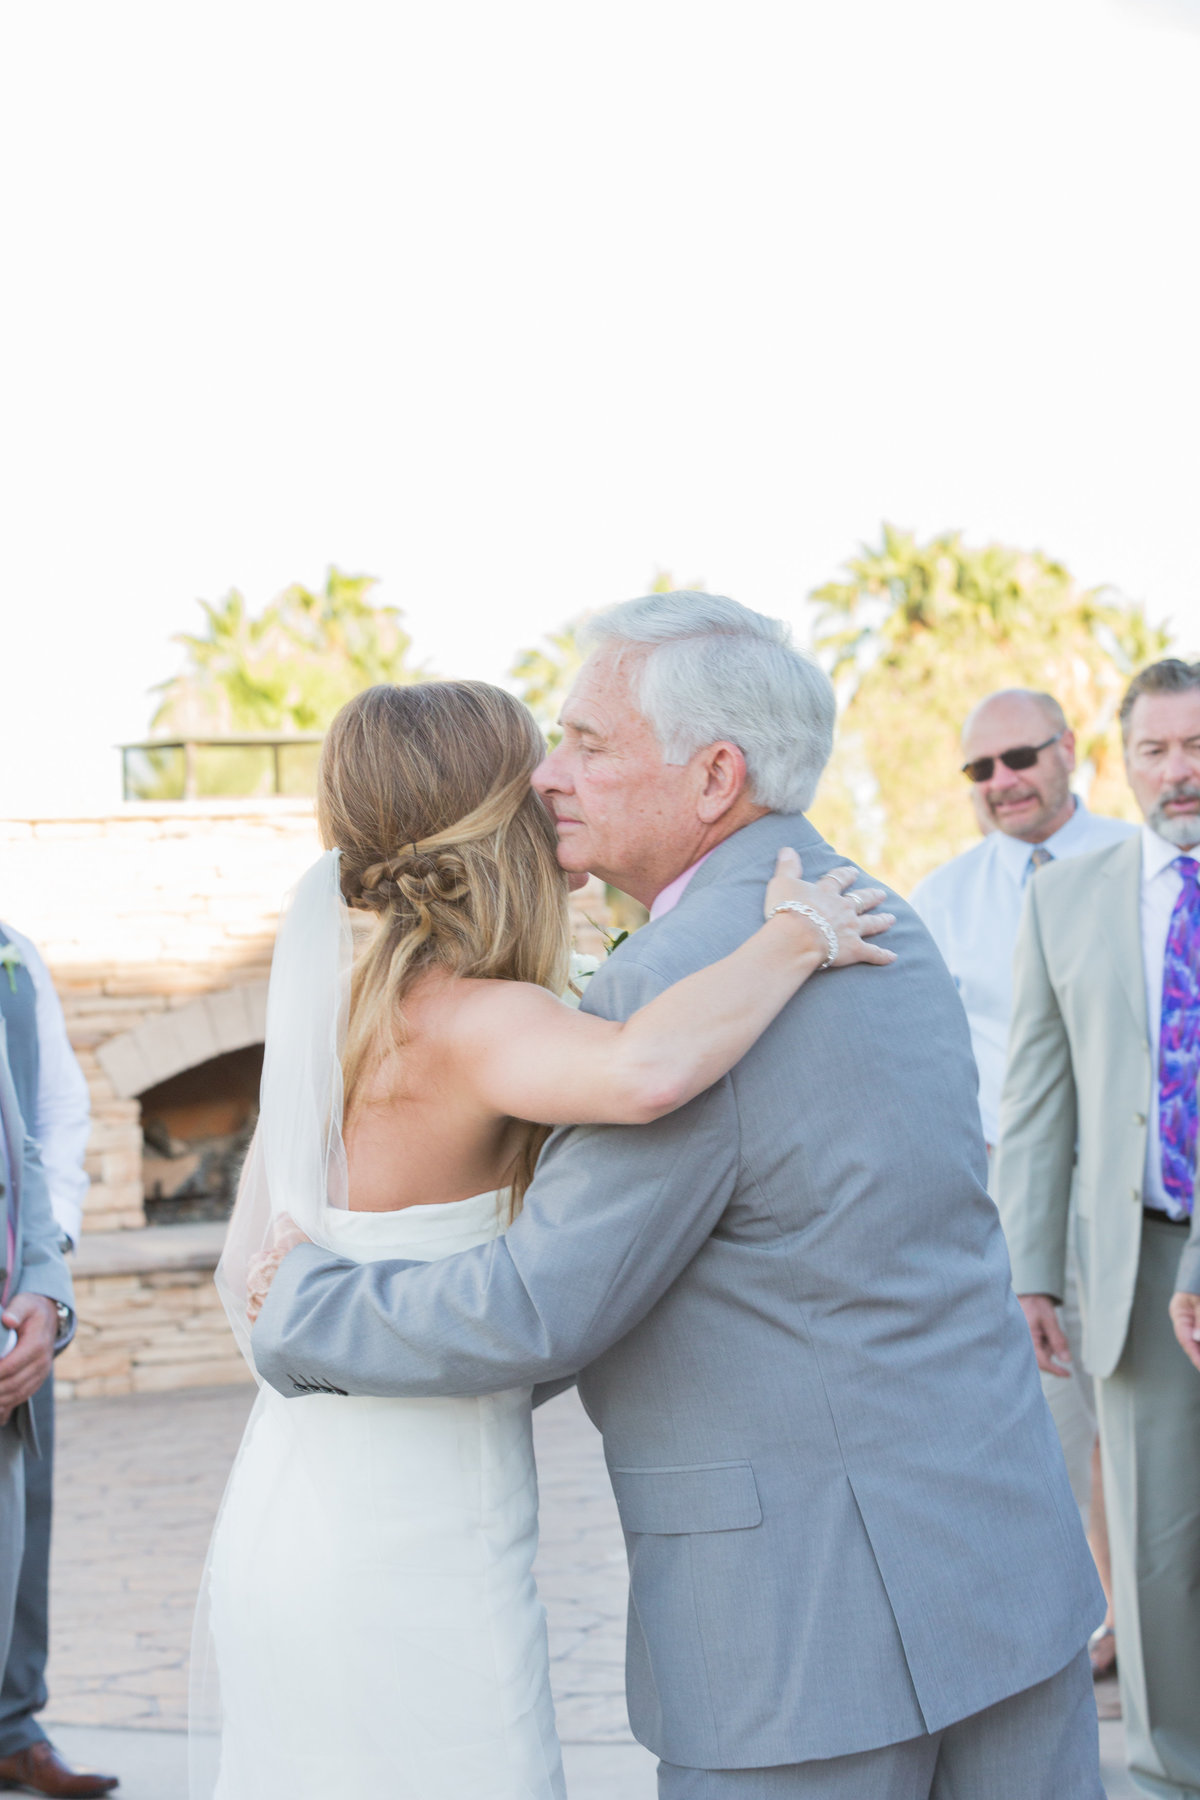 Erica Mendenhall Photography_Barn Wedding_MP_0508web